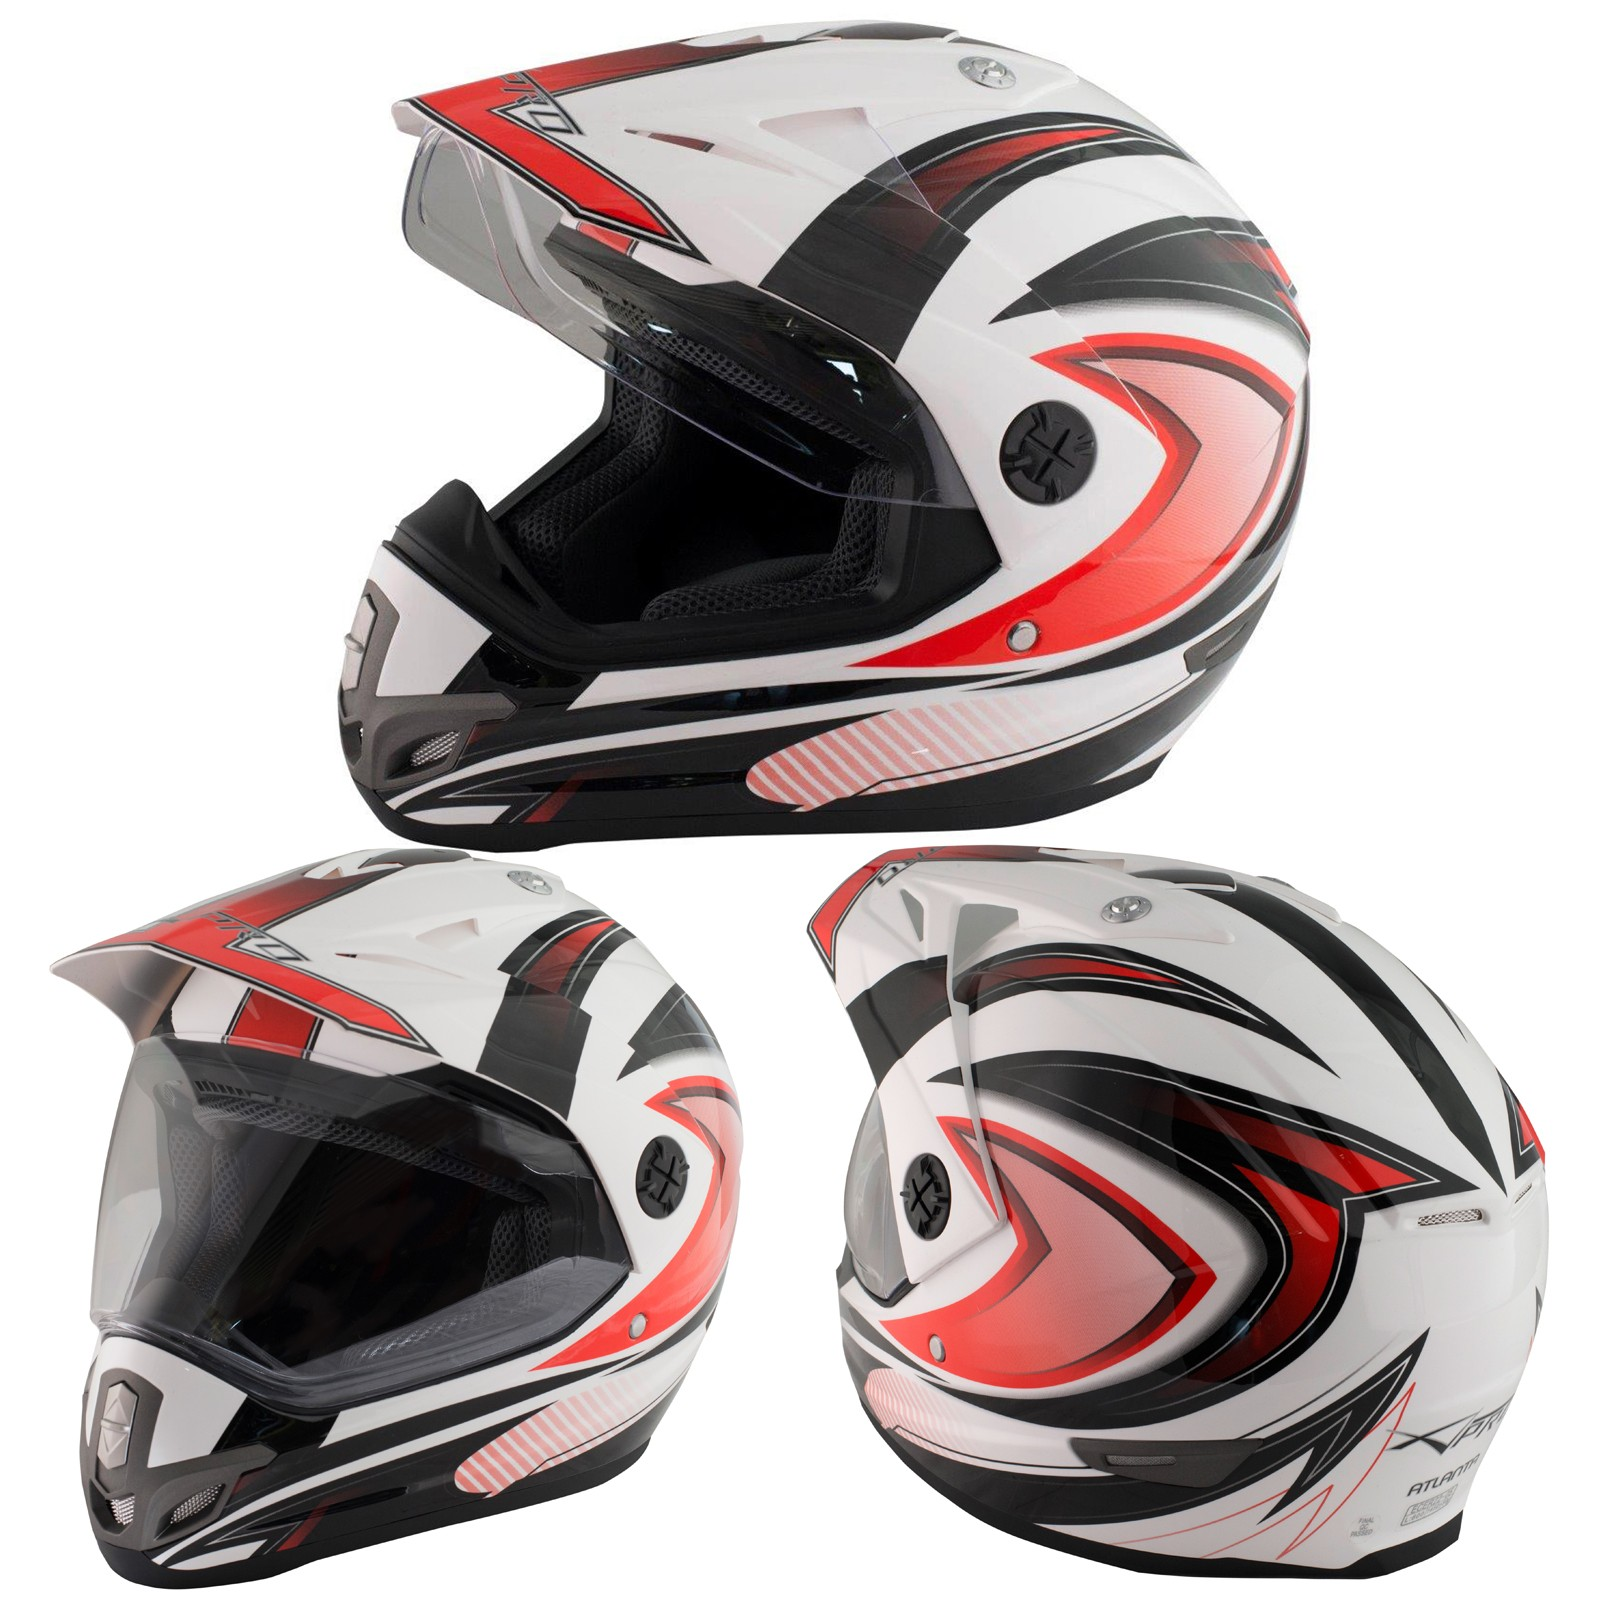 Casco Moto Cross Enduro Trial Quad Off Road Visiera Anti Nebbia Rosso